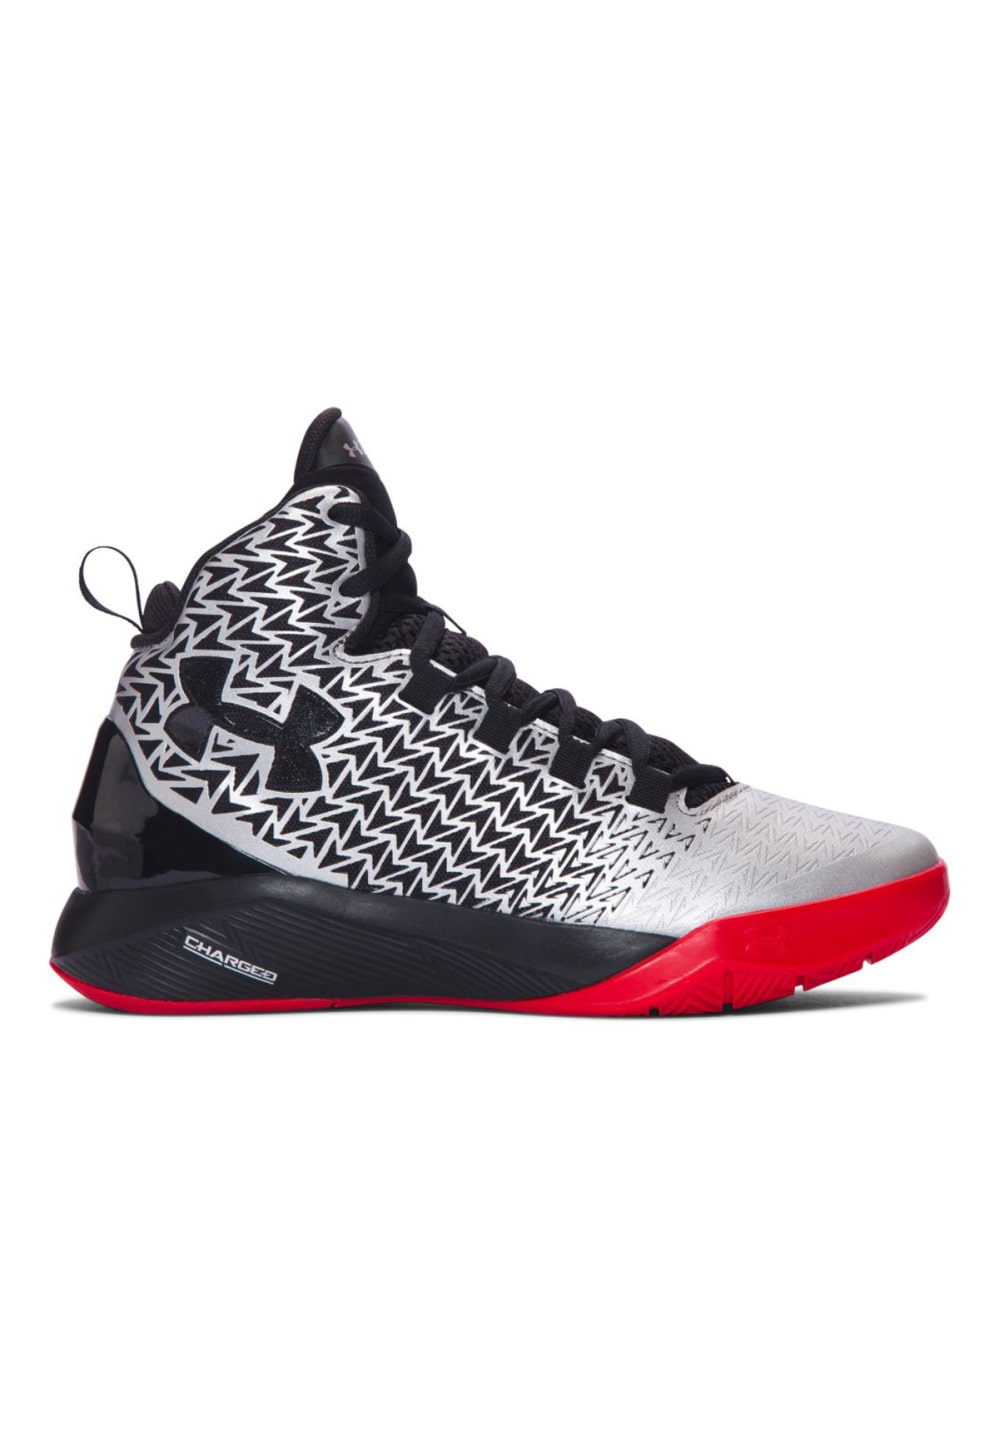 1f3ab93325f Next. -60%. This product is currently out of stock. Under Armour. BGS Clutchfit  Drive 3 - Indoor shoes